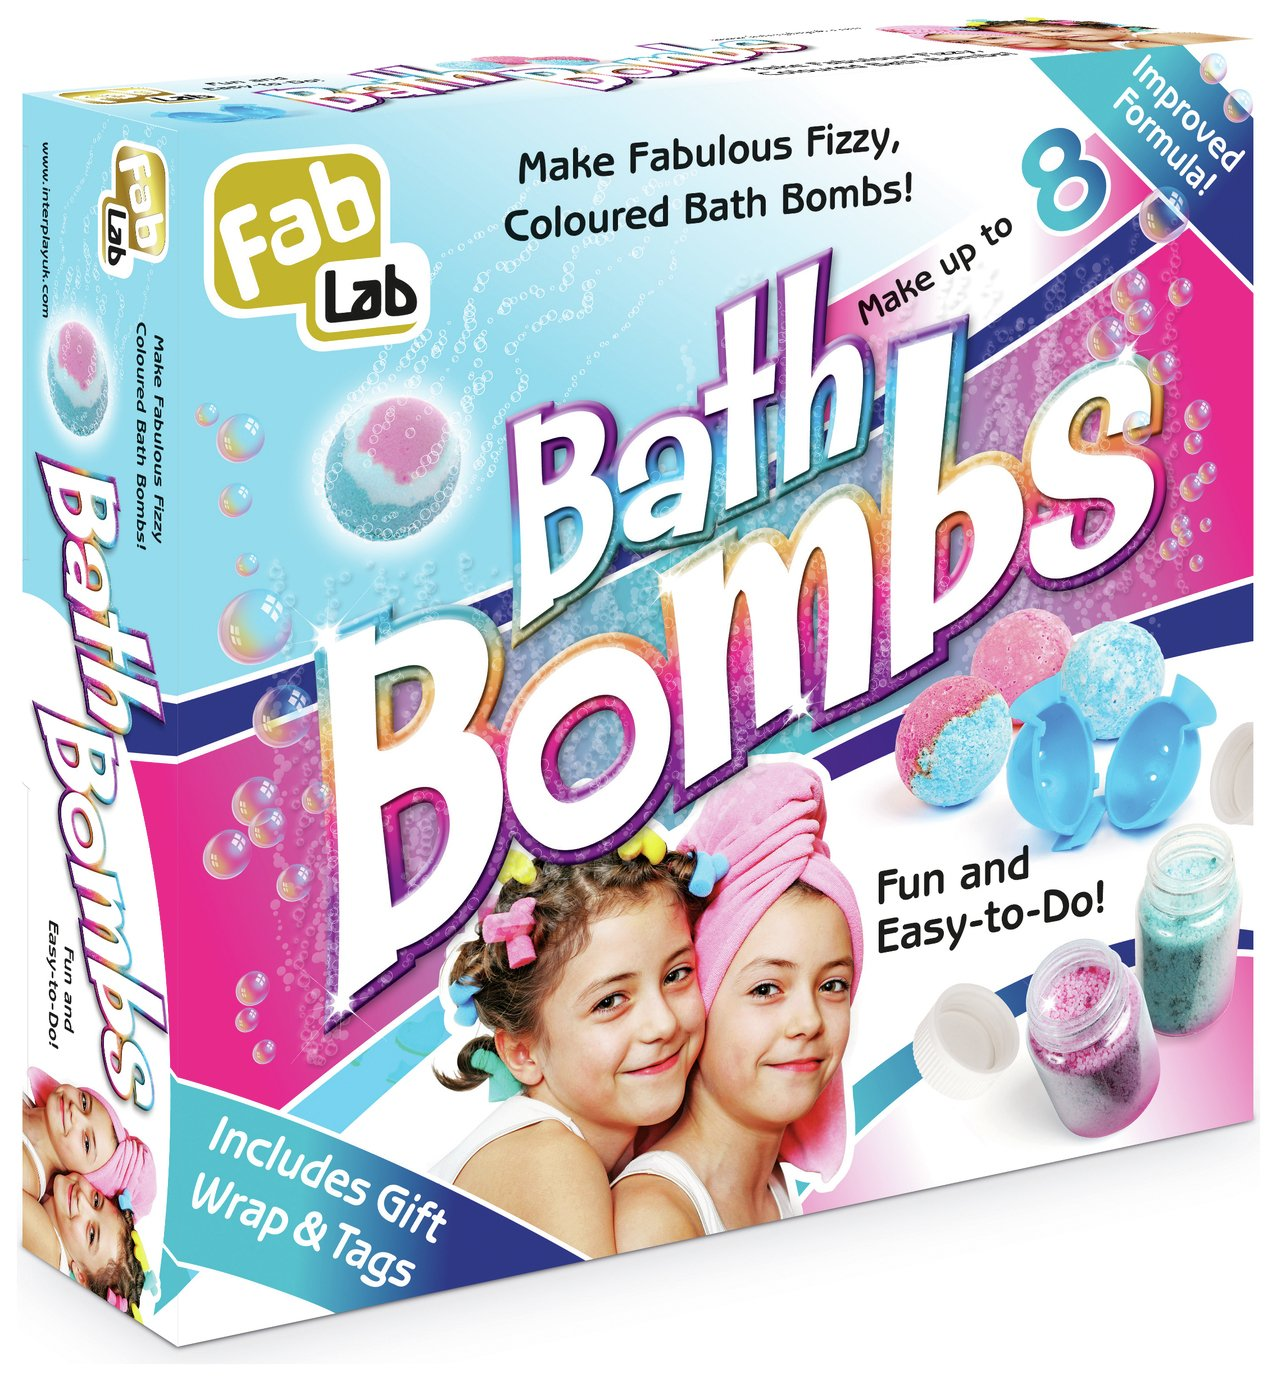 fab-lab-bath-bombs